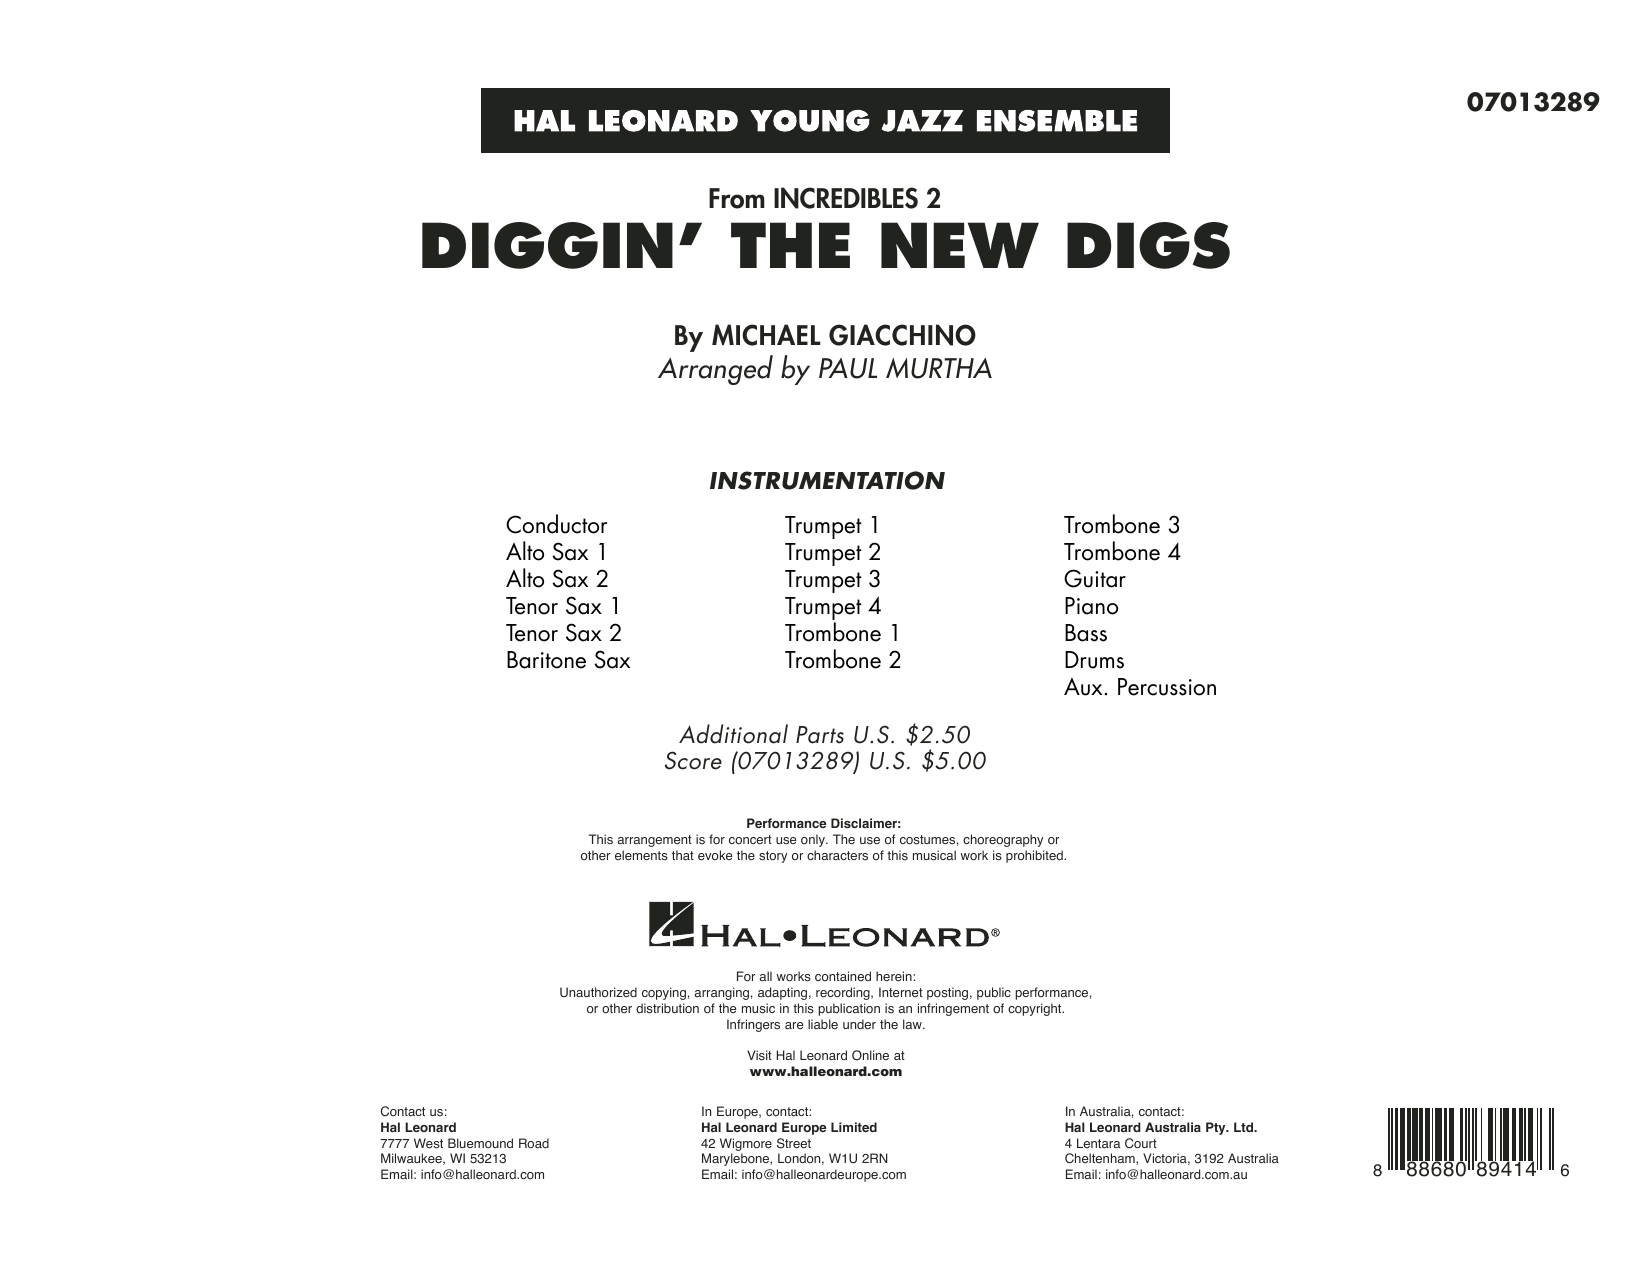 Michael Giacchino Diggin' the New Digs (from Incredibles 2) (arr. Paul Murtha) - Conductor Score (Full Score) sheet music preview music notes and score for Jazz Ensemble including 12 page(s)